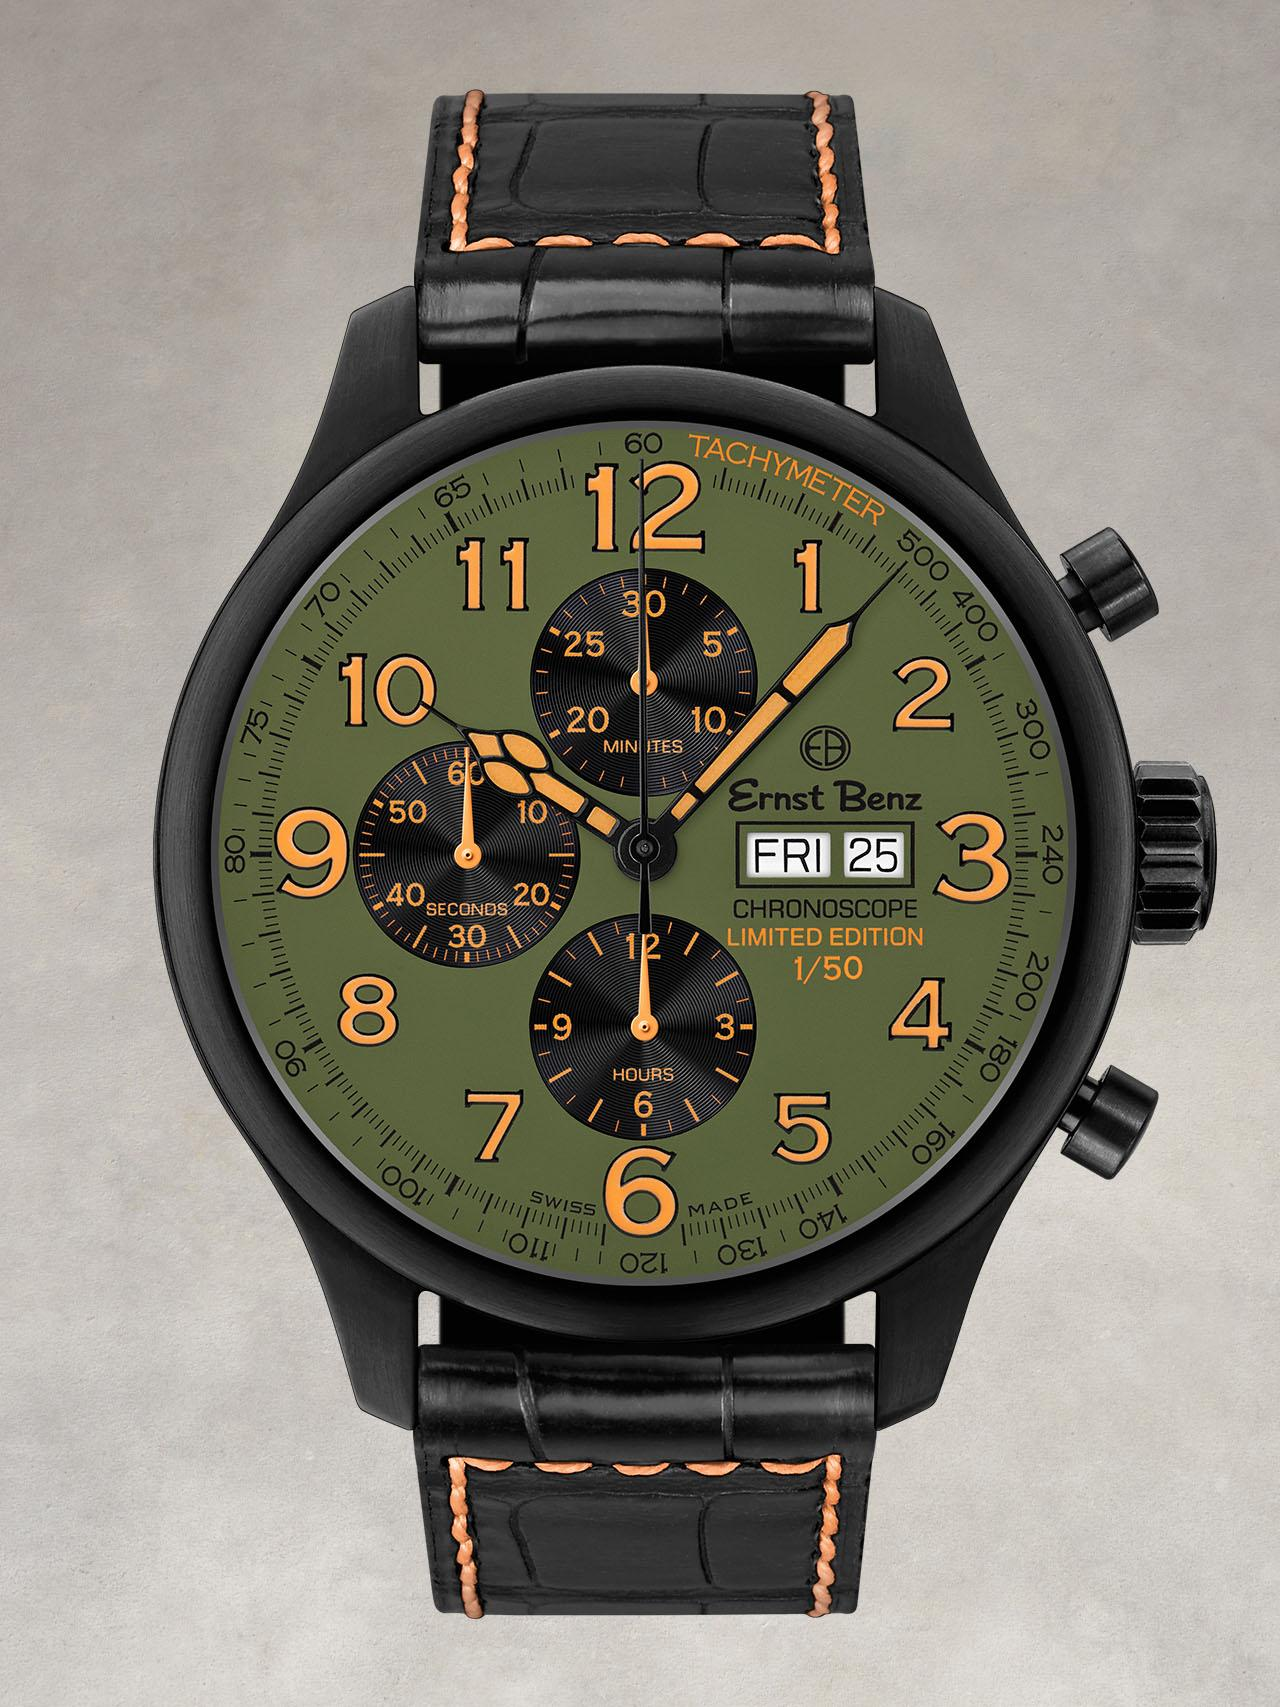 Ernst Benz ChronoCombat Chrono Scope Watch